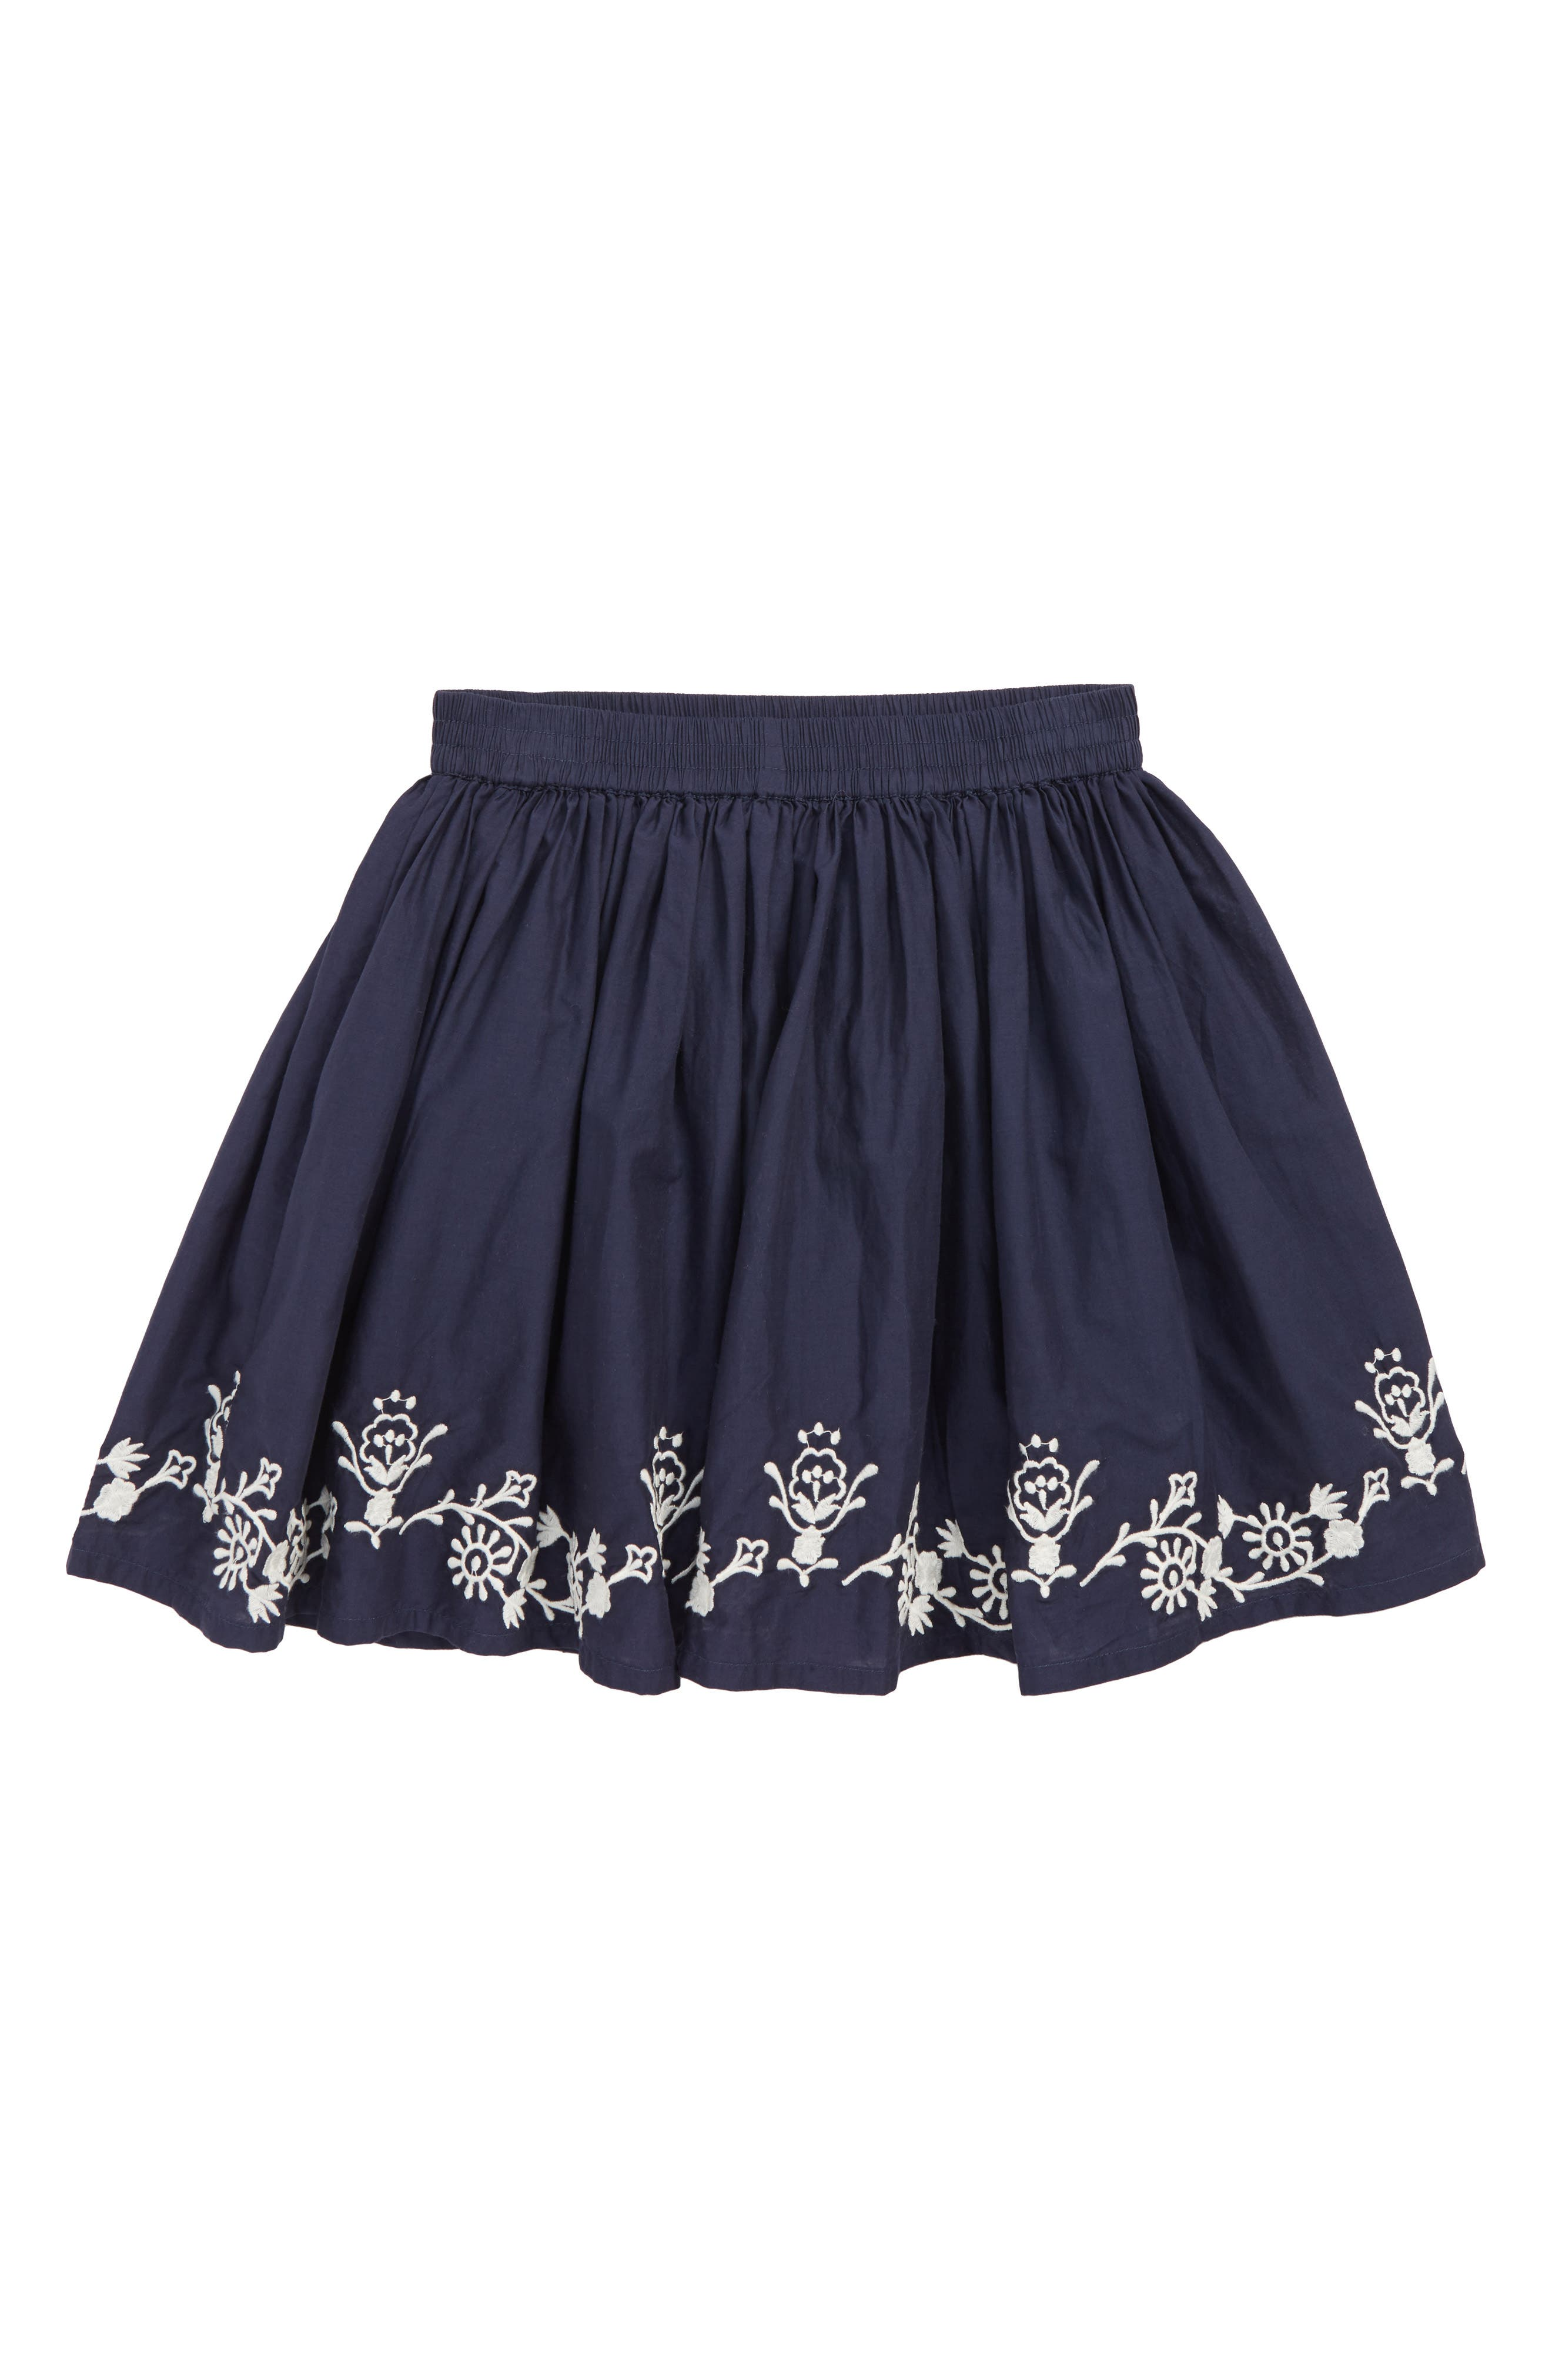 Embroidered Skirt,                             Main thumbnail 1, color,                             410